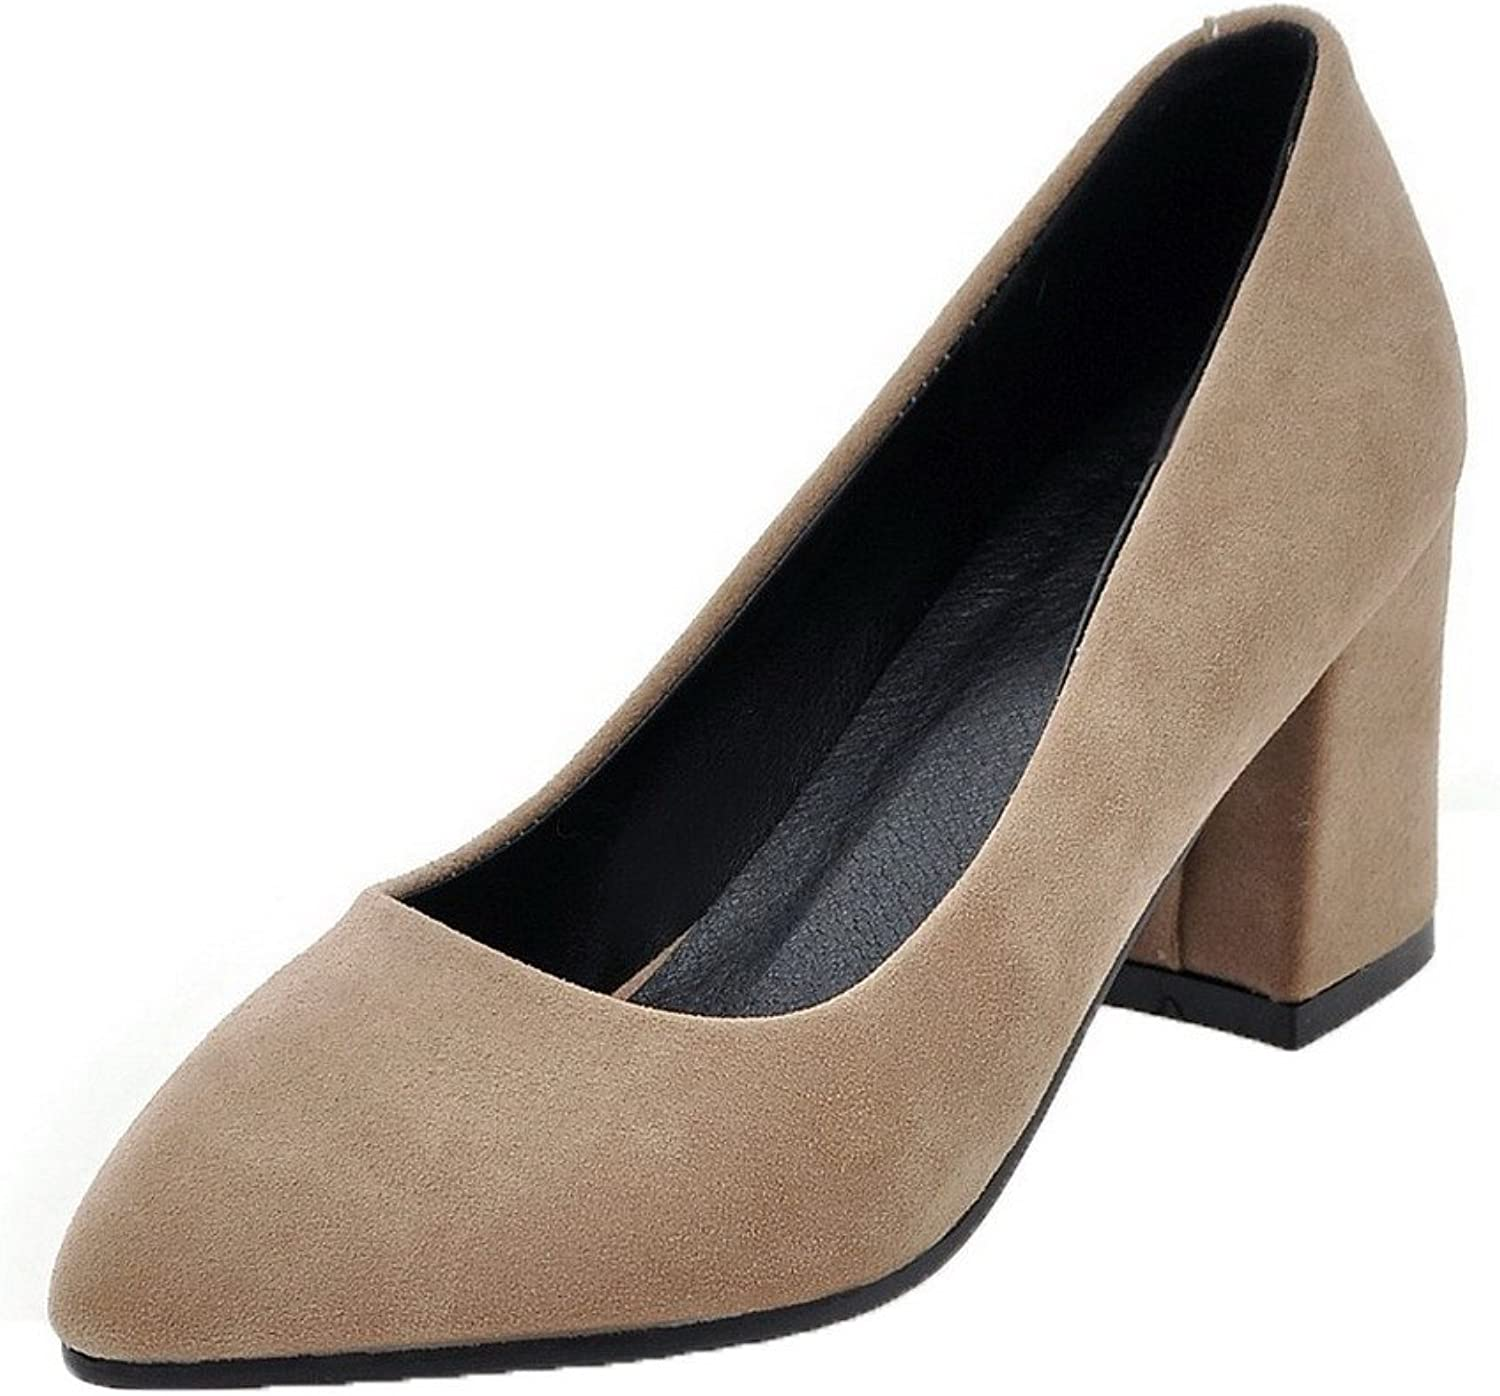 WeenFashion Women's Kitten-Heels Solid Pull-On Frosted Pointed-Toe Pumps-shoes